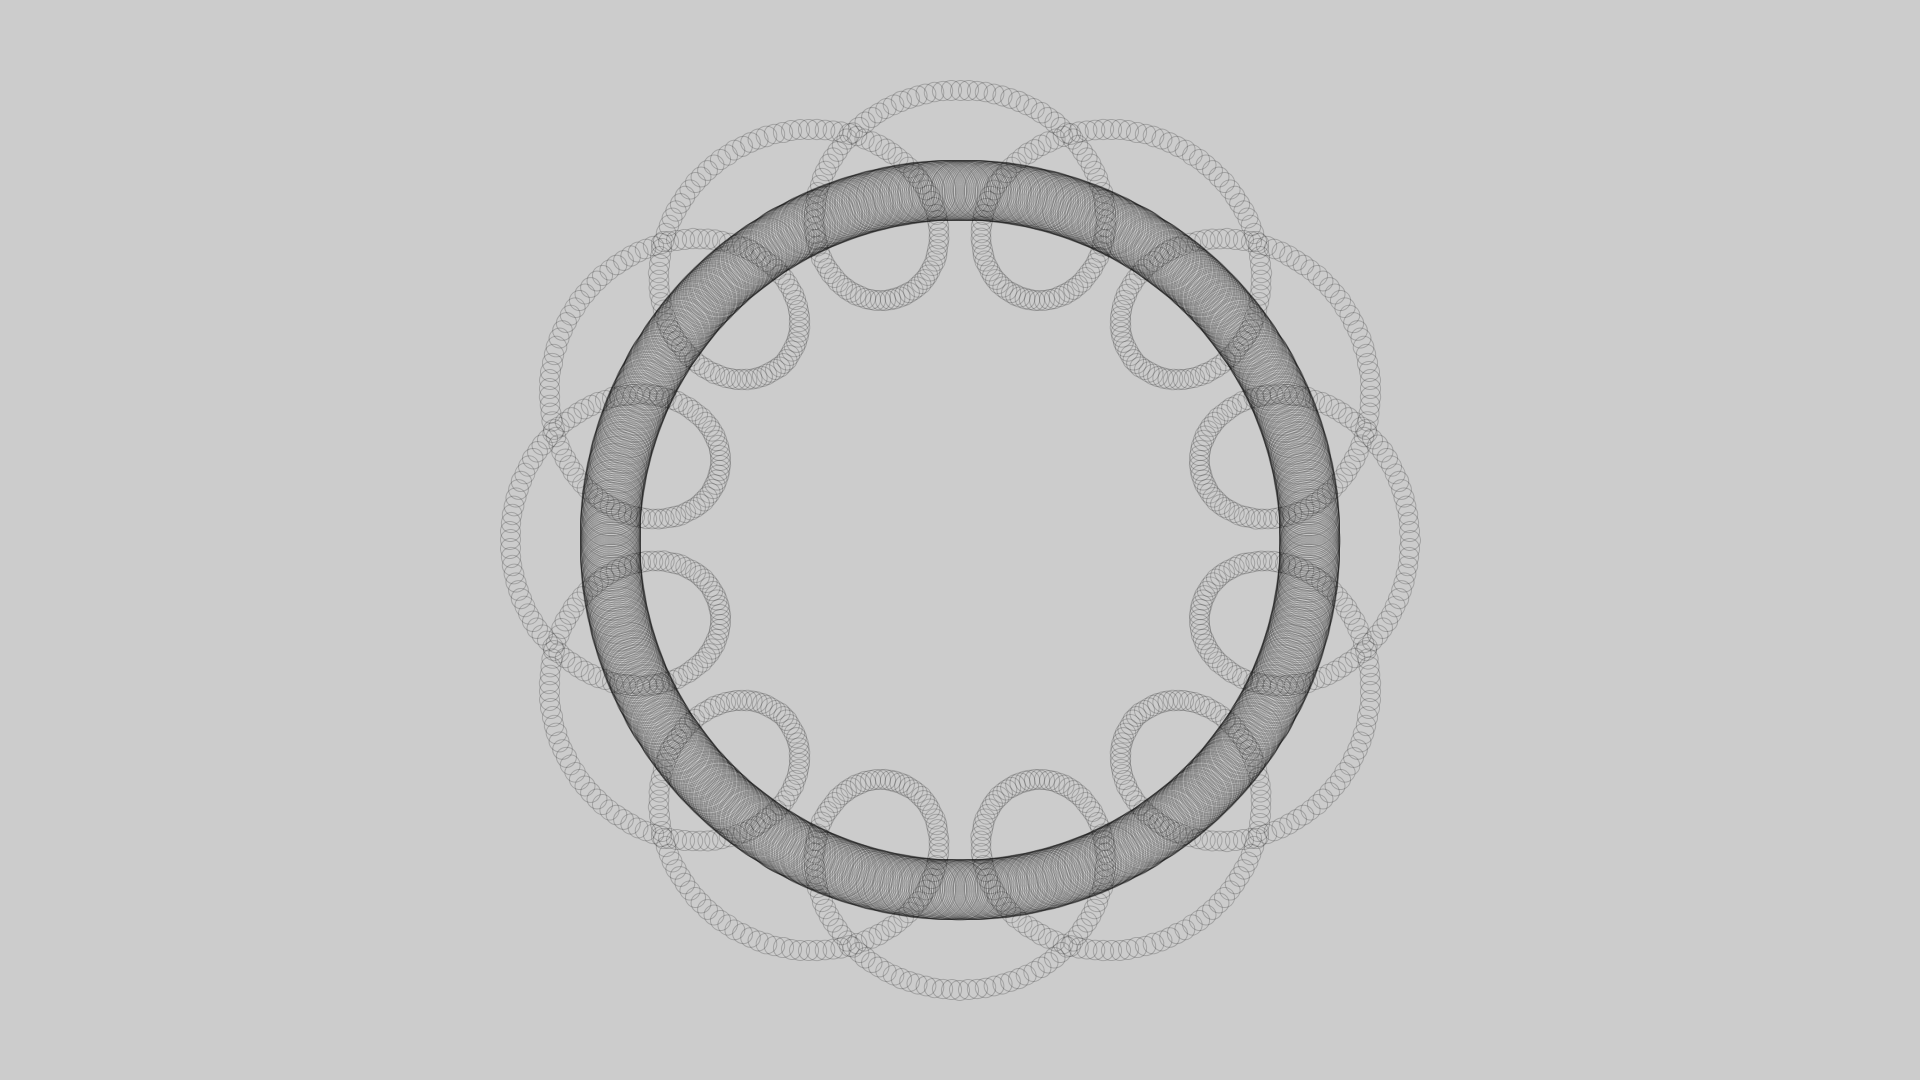 orrery-2015-3-23-10-41-44-01201.png